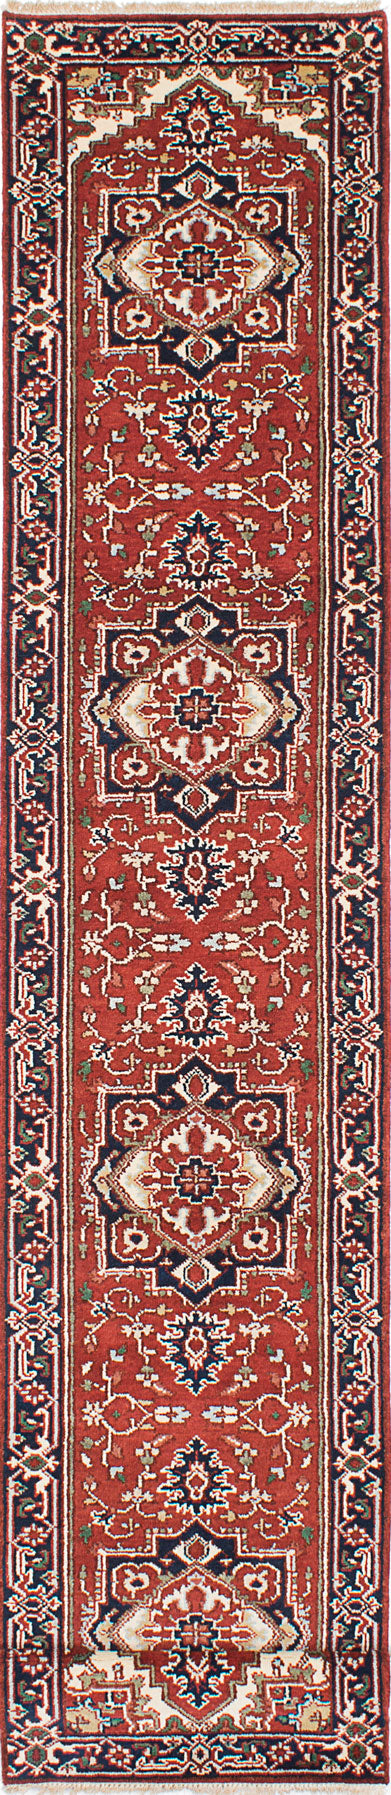 "Hand-knotted Indian Floral  Traditional Serapi-Heritage Runner rug  Dark Copper, Dark Navy 2'7 x 16'0"" """